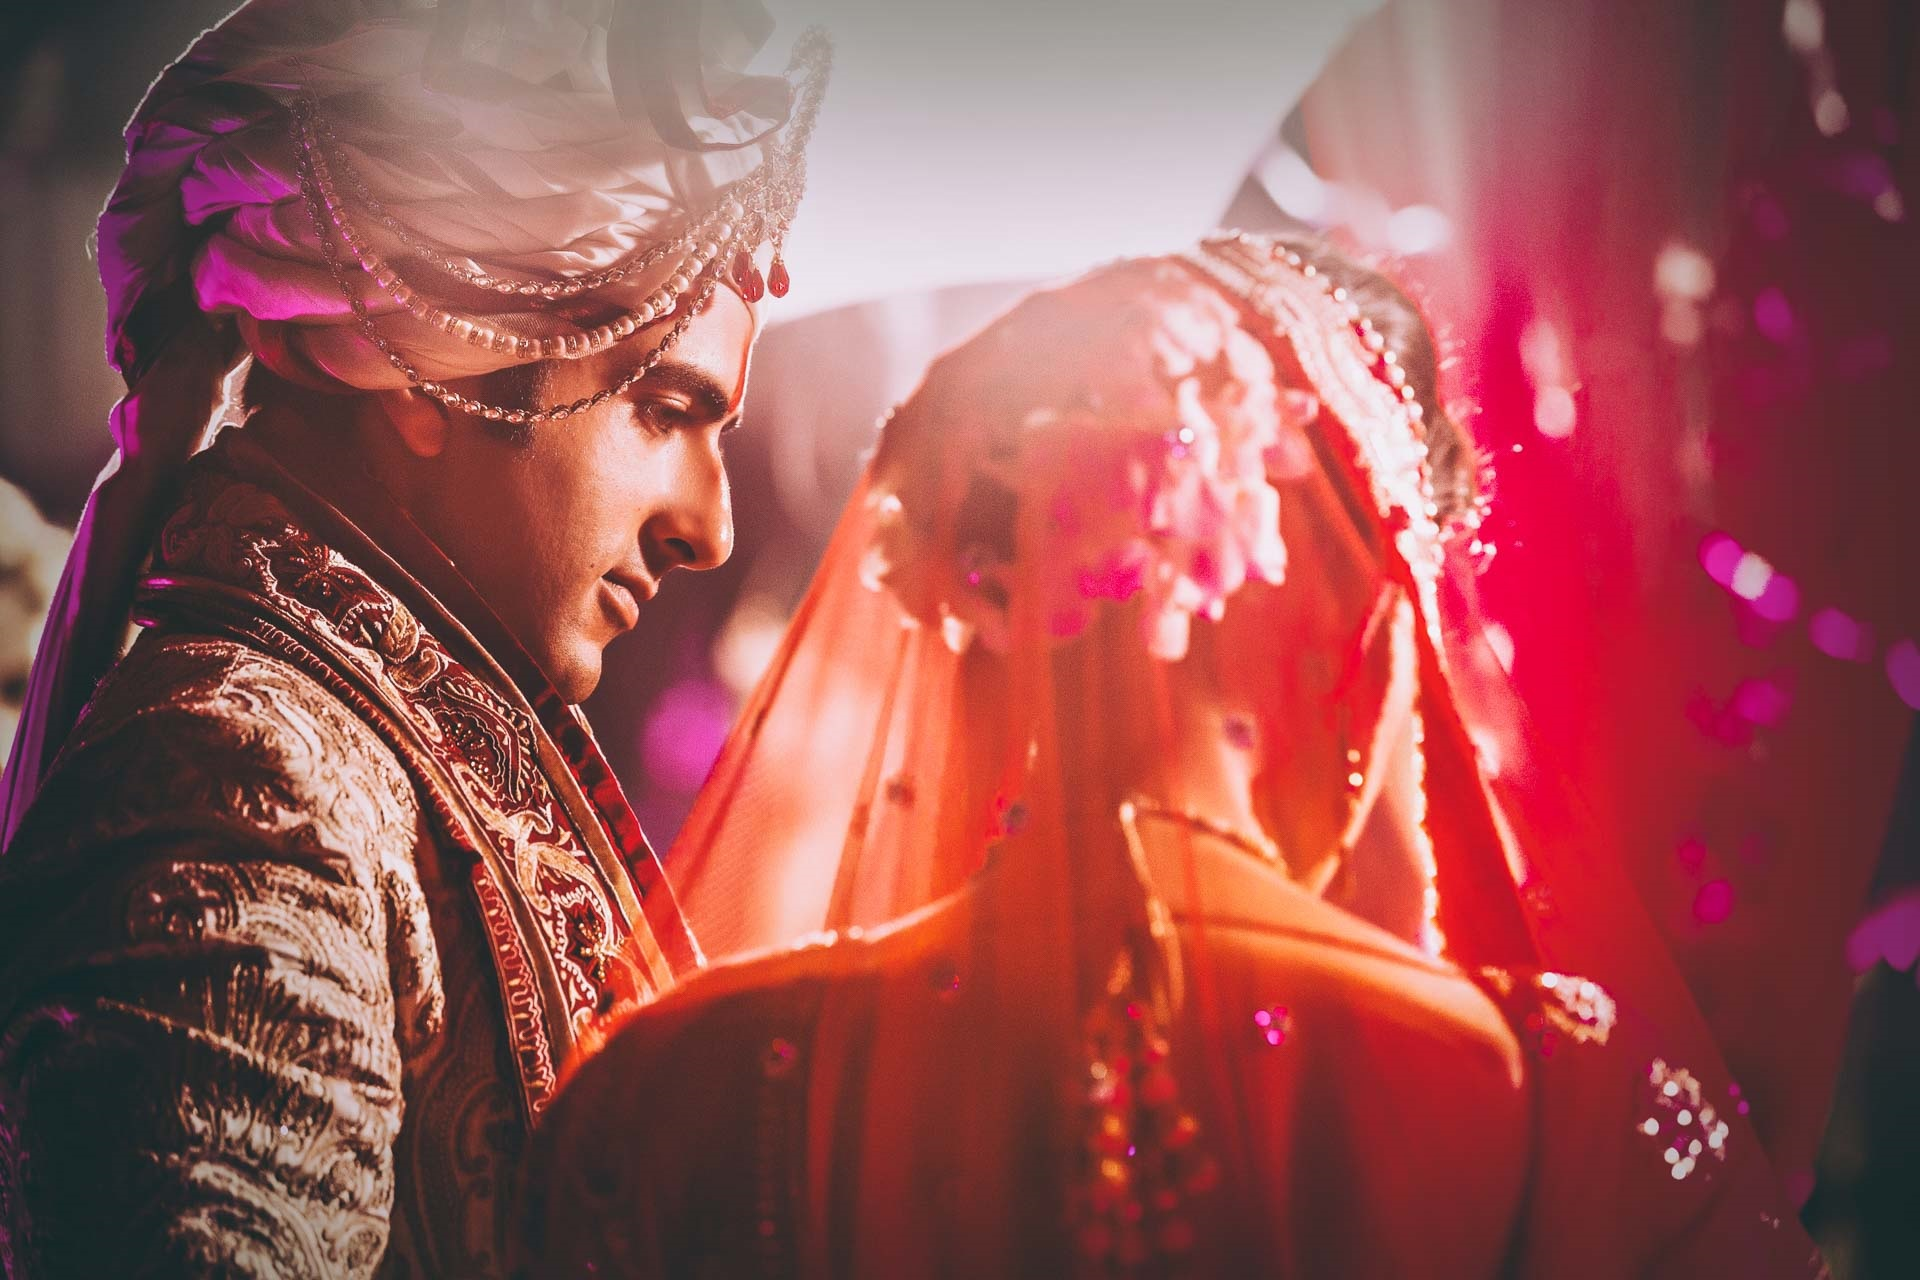 arp-films-indian-wedding-photography-long-island-ny-new-jersey-nj-pennsylvania-pa-3